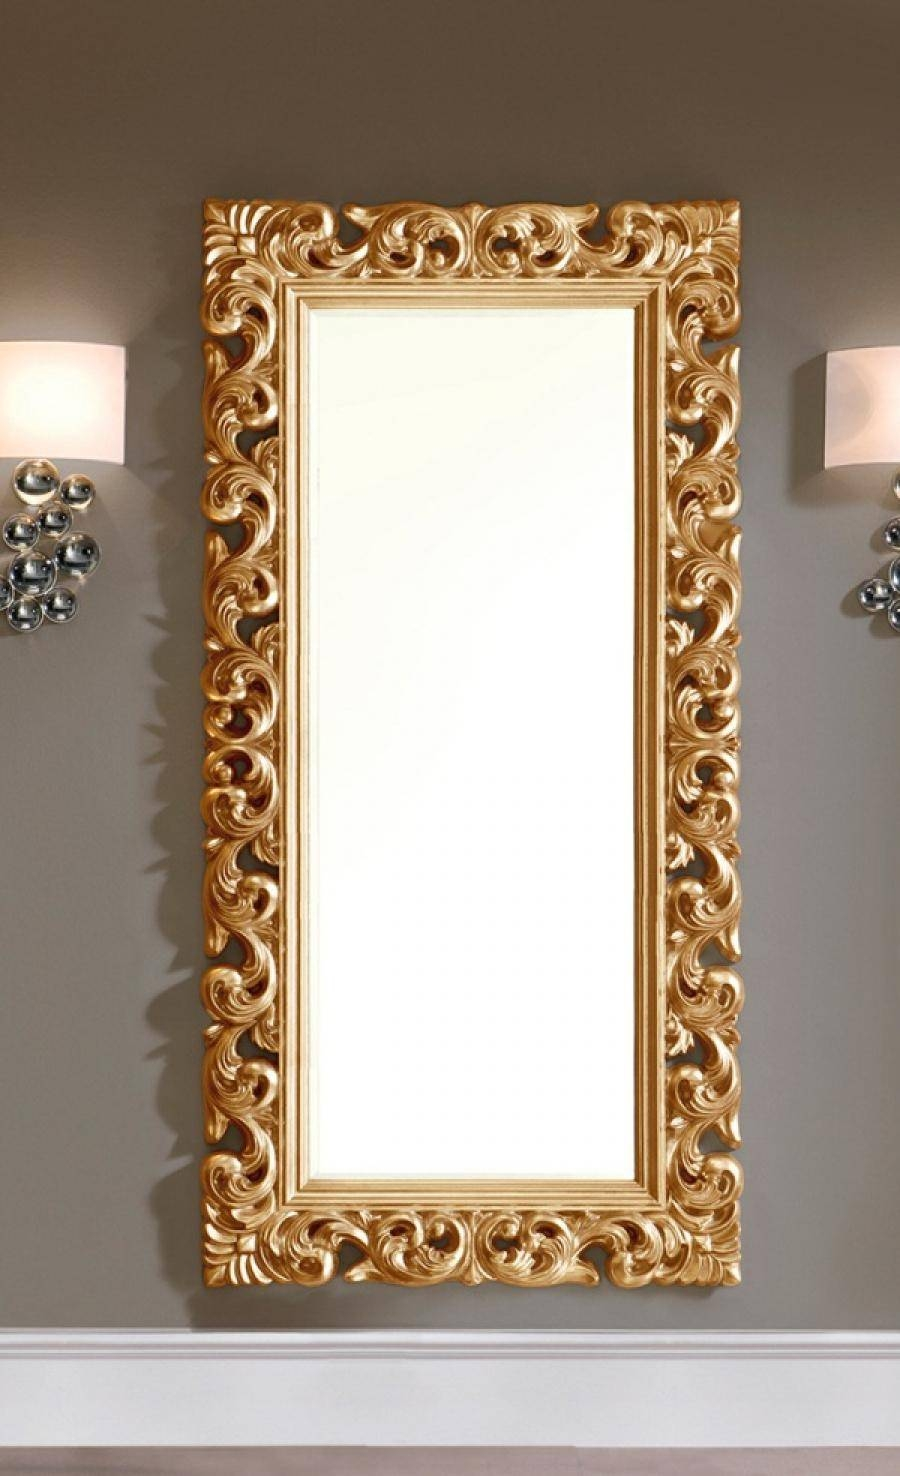 Large Modern Ornate Mirror In Gold Colour Finish Pertaining To Large Ornate Mirrors (View 11 of 25)